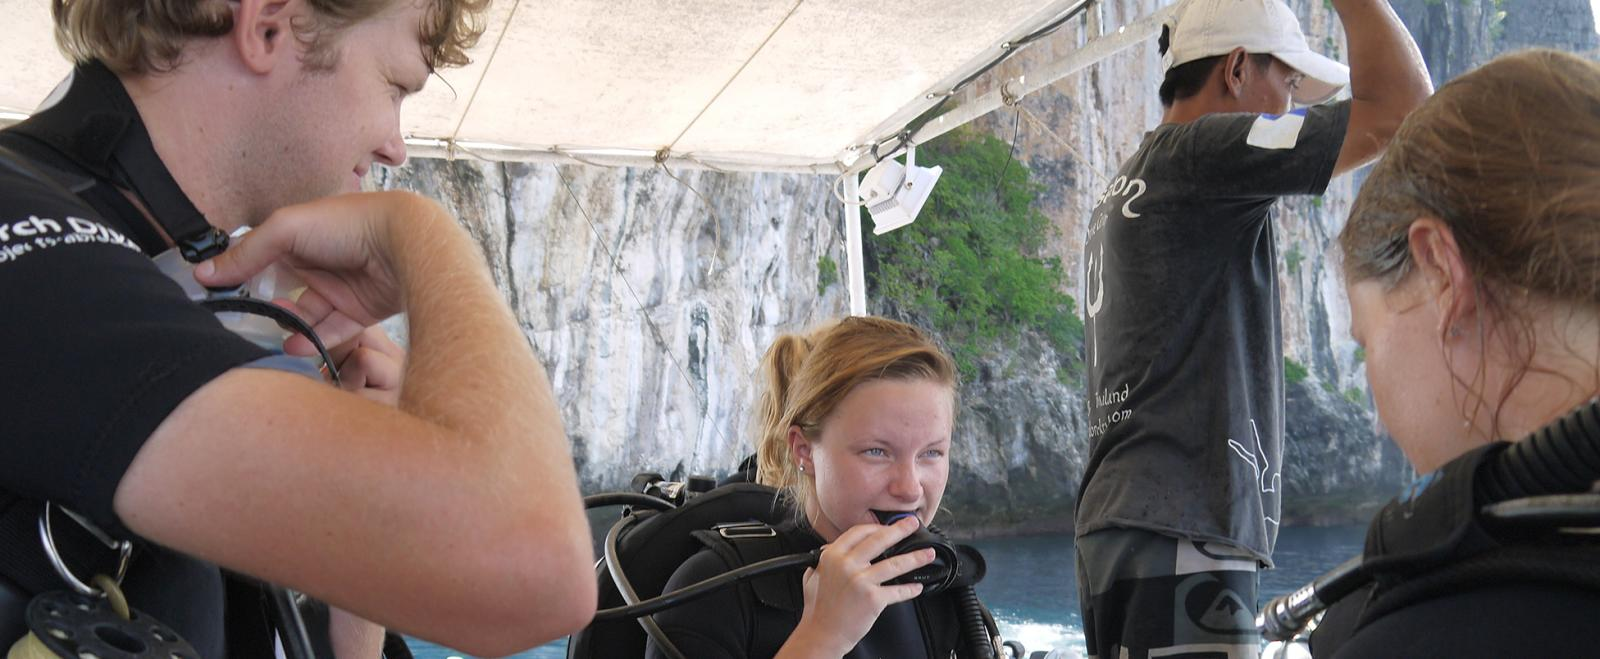 Conservation volunteers getting ready for a scuba dive in Thailand, Asia